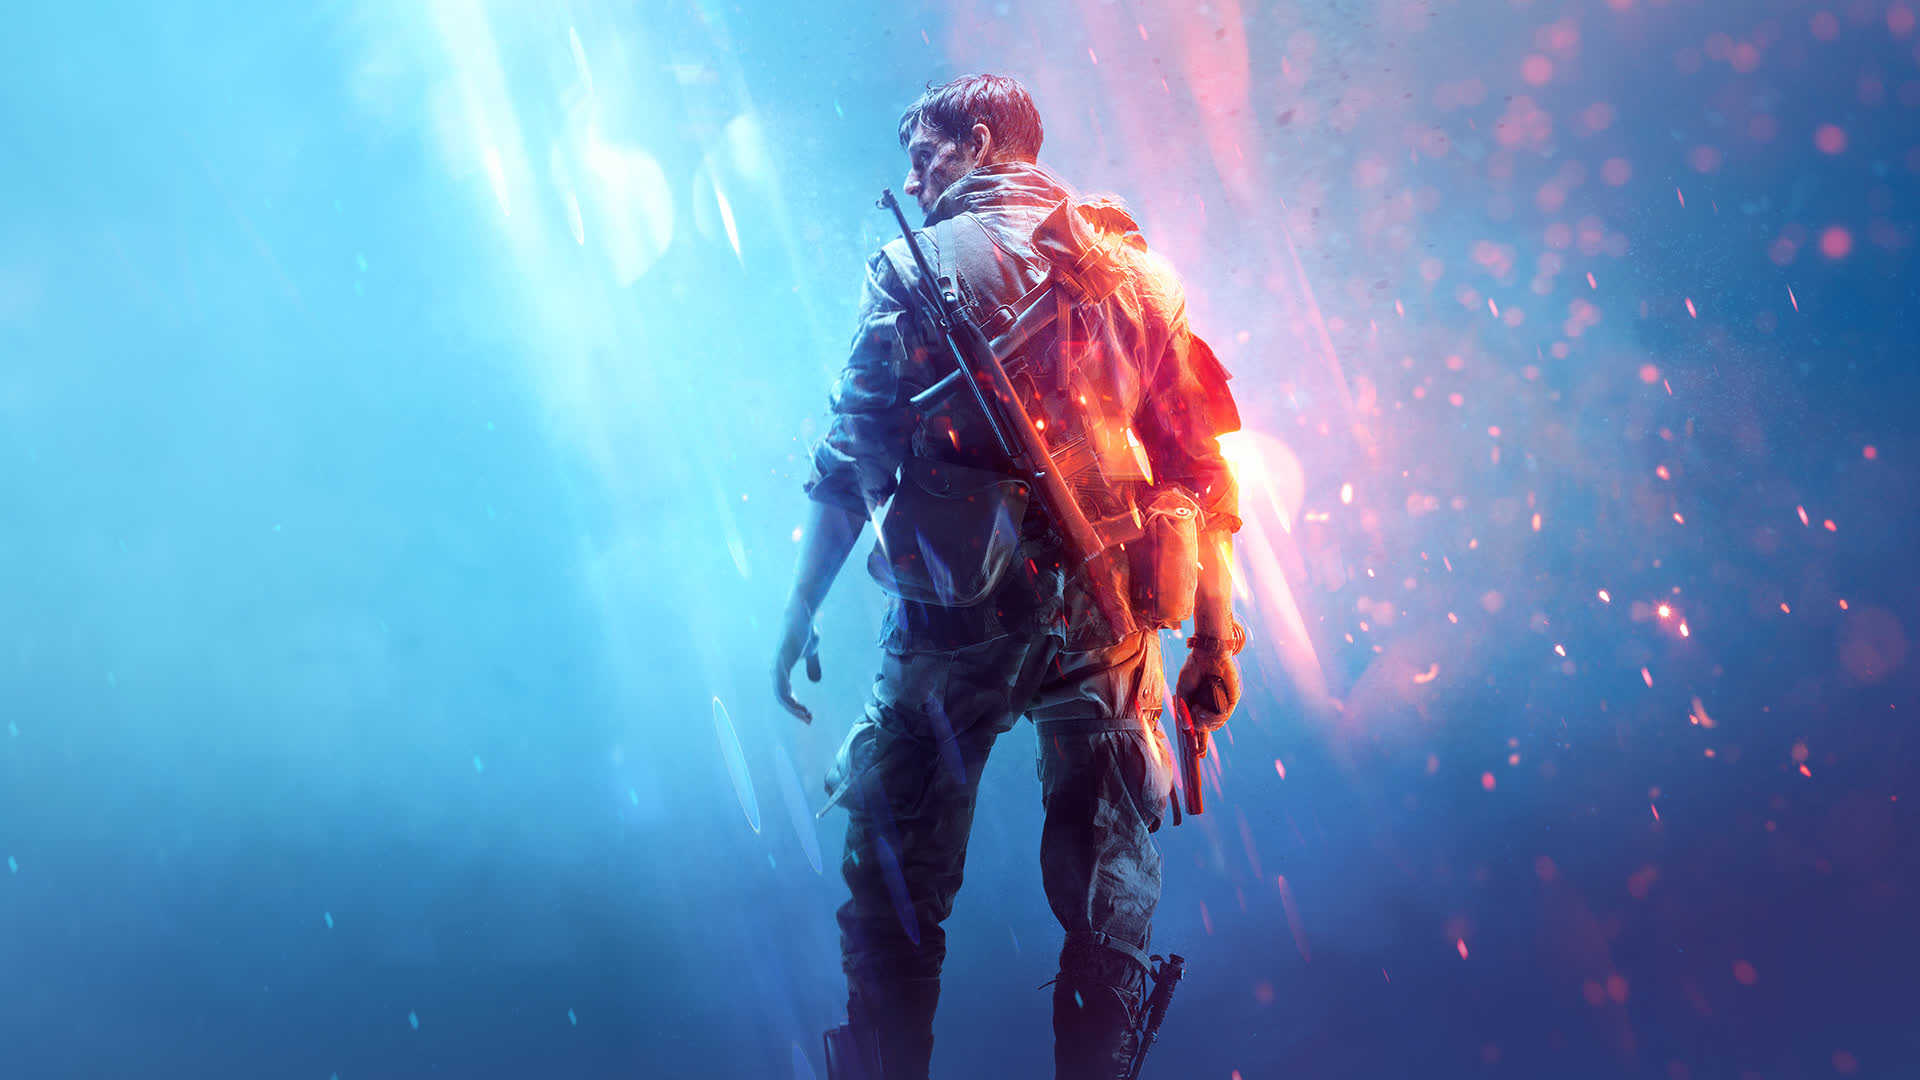 EA is developing a Battlefield mobile game for 2022, Battlefield 6 is coming later this year